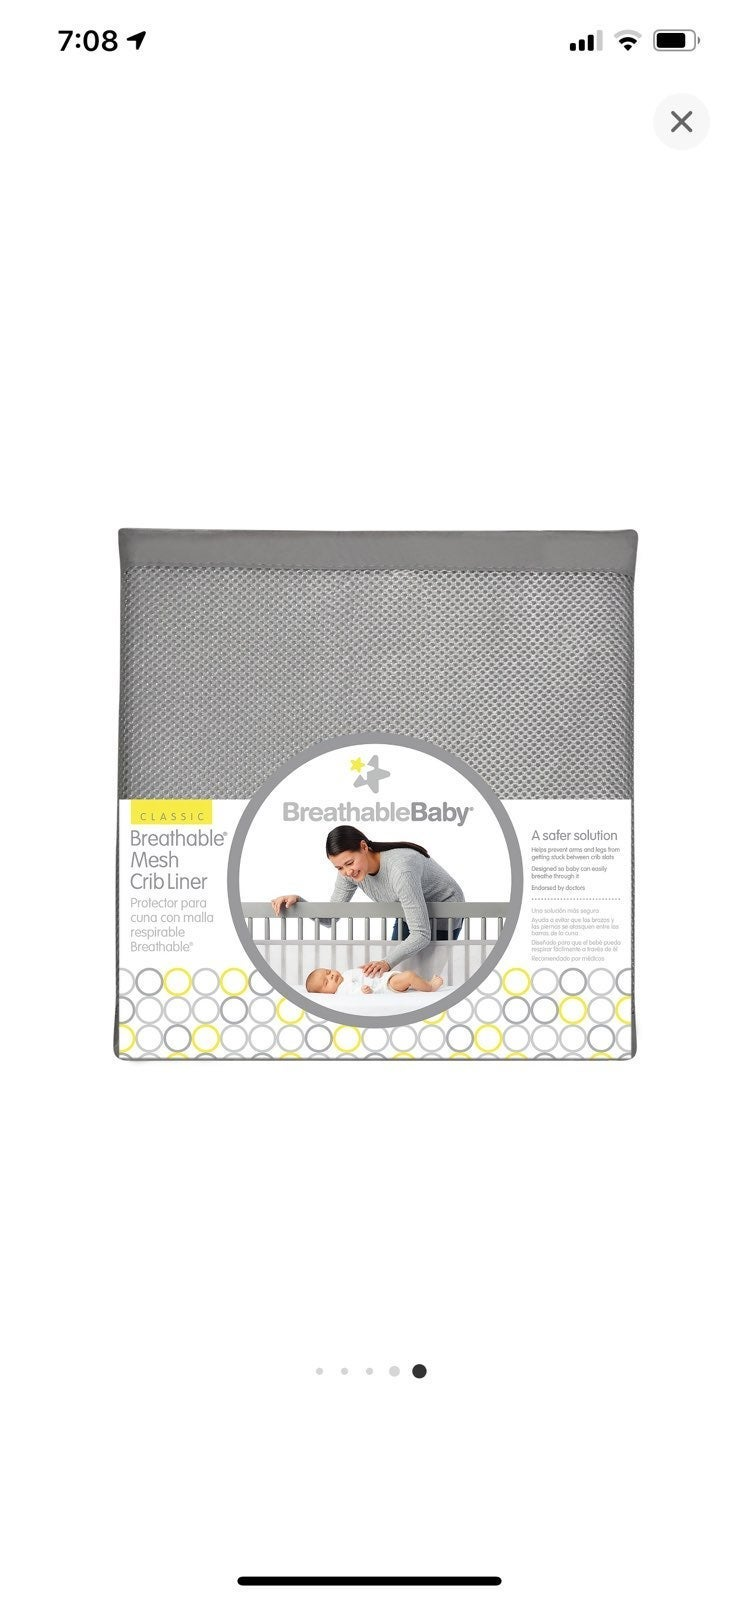 Breathable mesh baby crib liner, used